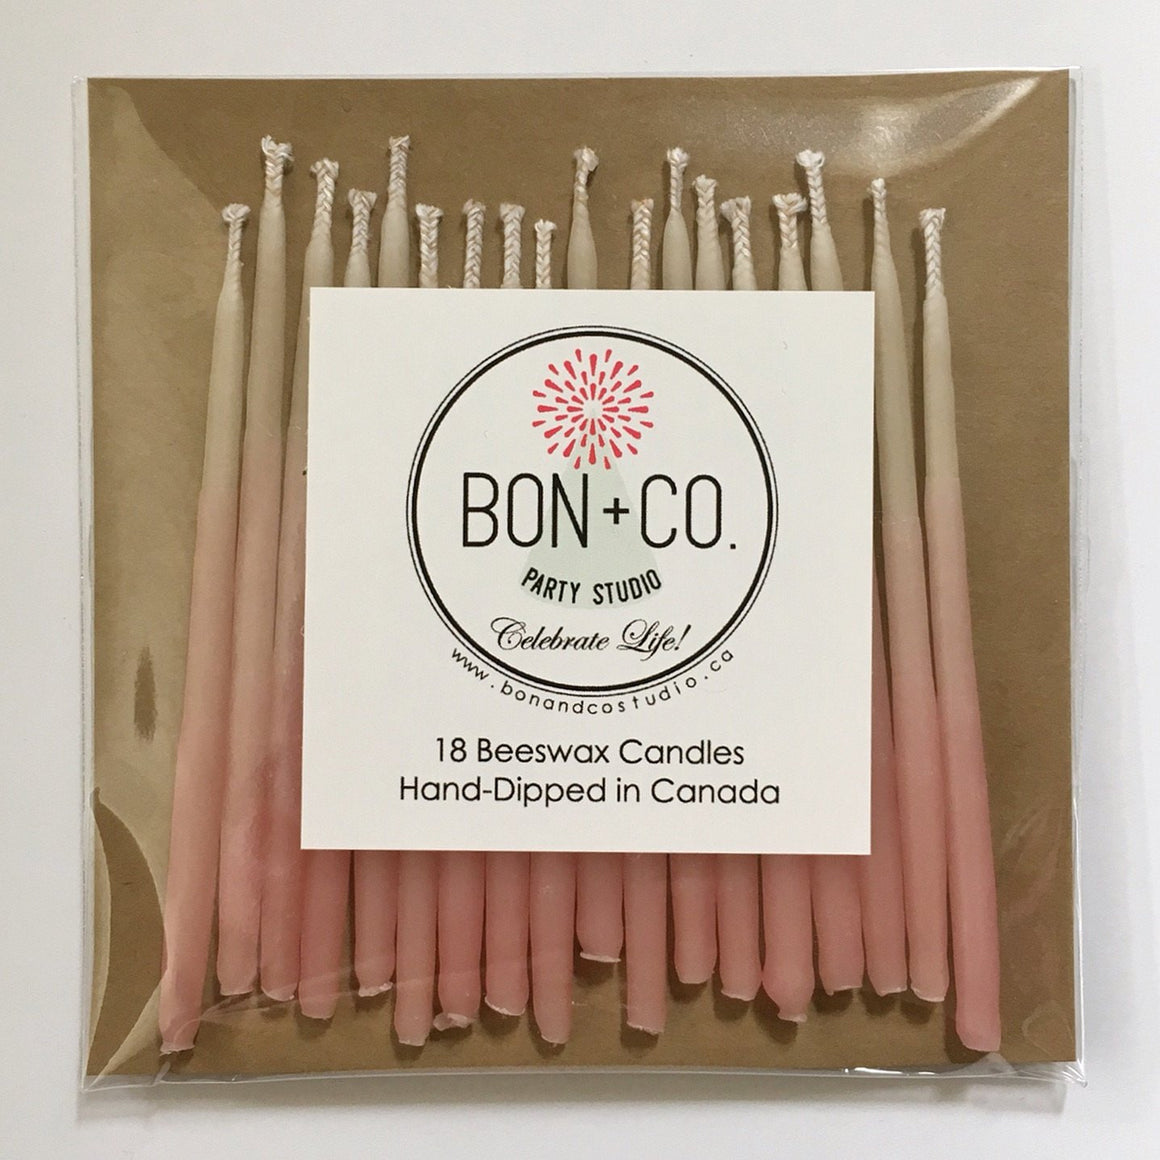 "CANDLES 3"" BEESWAX - OMBRE SOFT PINK, Candles + Sparklers, BON + CO - Bon + Co. Party Studio"